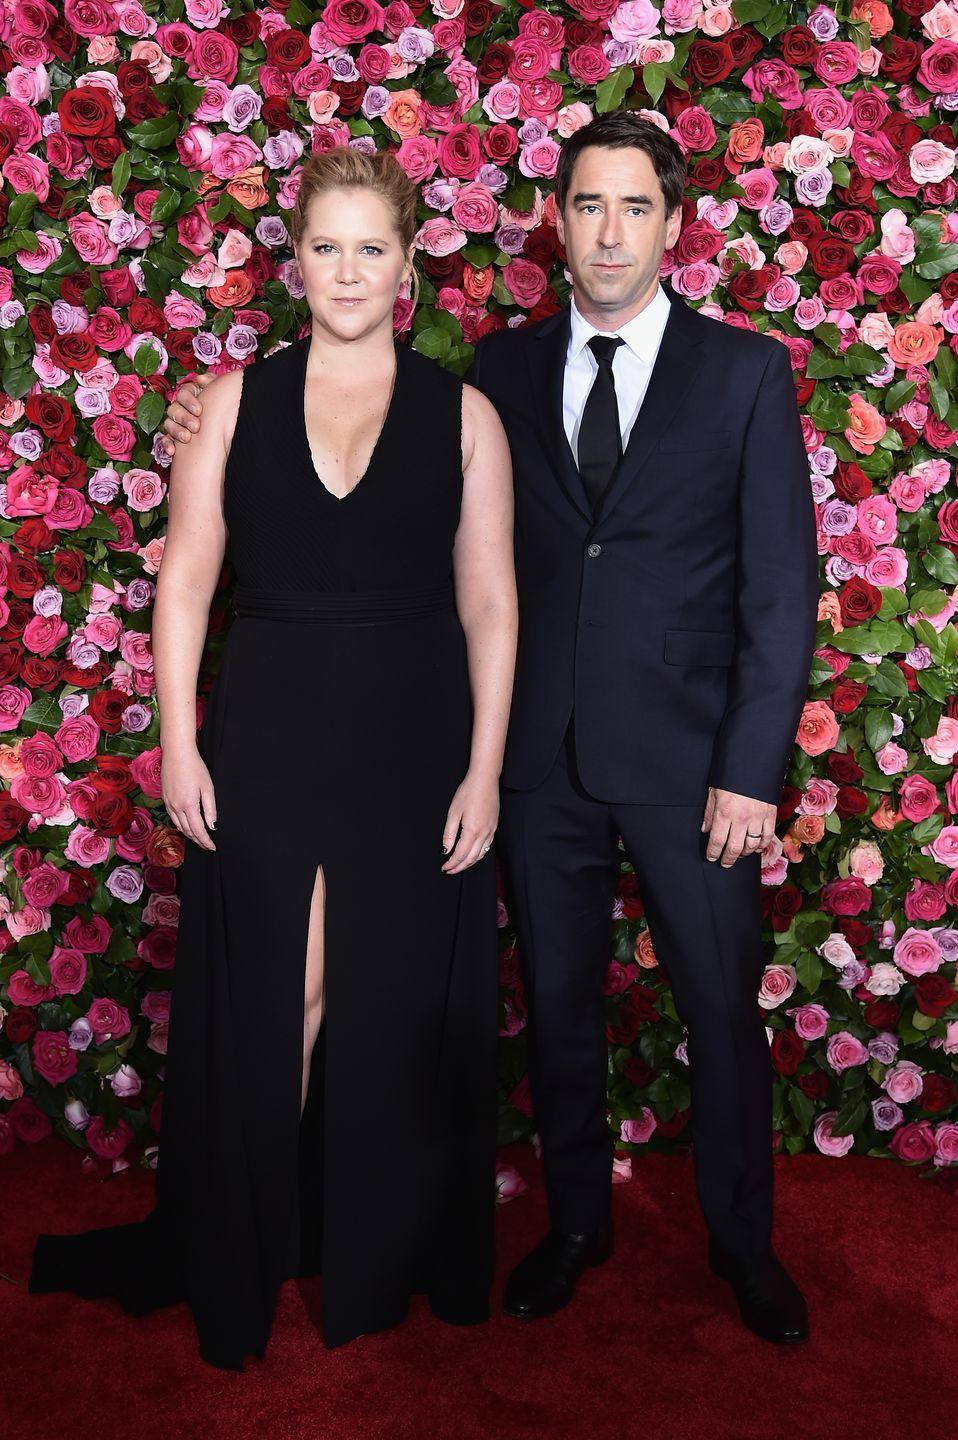 "<p>The comedian met Fischer through her assistant, Molly, who is <em>actually</em> Fischer's sister, so she's basically employee of the year. </p><p>Fischer is an award-winning chef who has served food for none other than the Obamas and Jake Gyllenhaal. <a href=""https://abcnews.go.com/GMA/Culture/amy-schumer-reveals-met-husband-shares-details-secret/story?id=54391244"" rel=""nofollow noopener"" target=""_blank"" data-ylk=""slk:On one vacation to Martha's Vineyard,"" class=""link rapid-noclick-resp"">On one vacation to Martha's Vineyard,</a> Molly suggested that her brother should pop on by Schumer's vacation house to cook for her, and the rest is history.</p>"